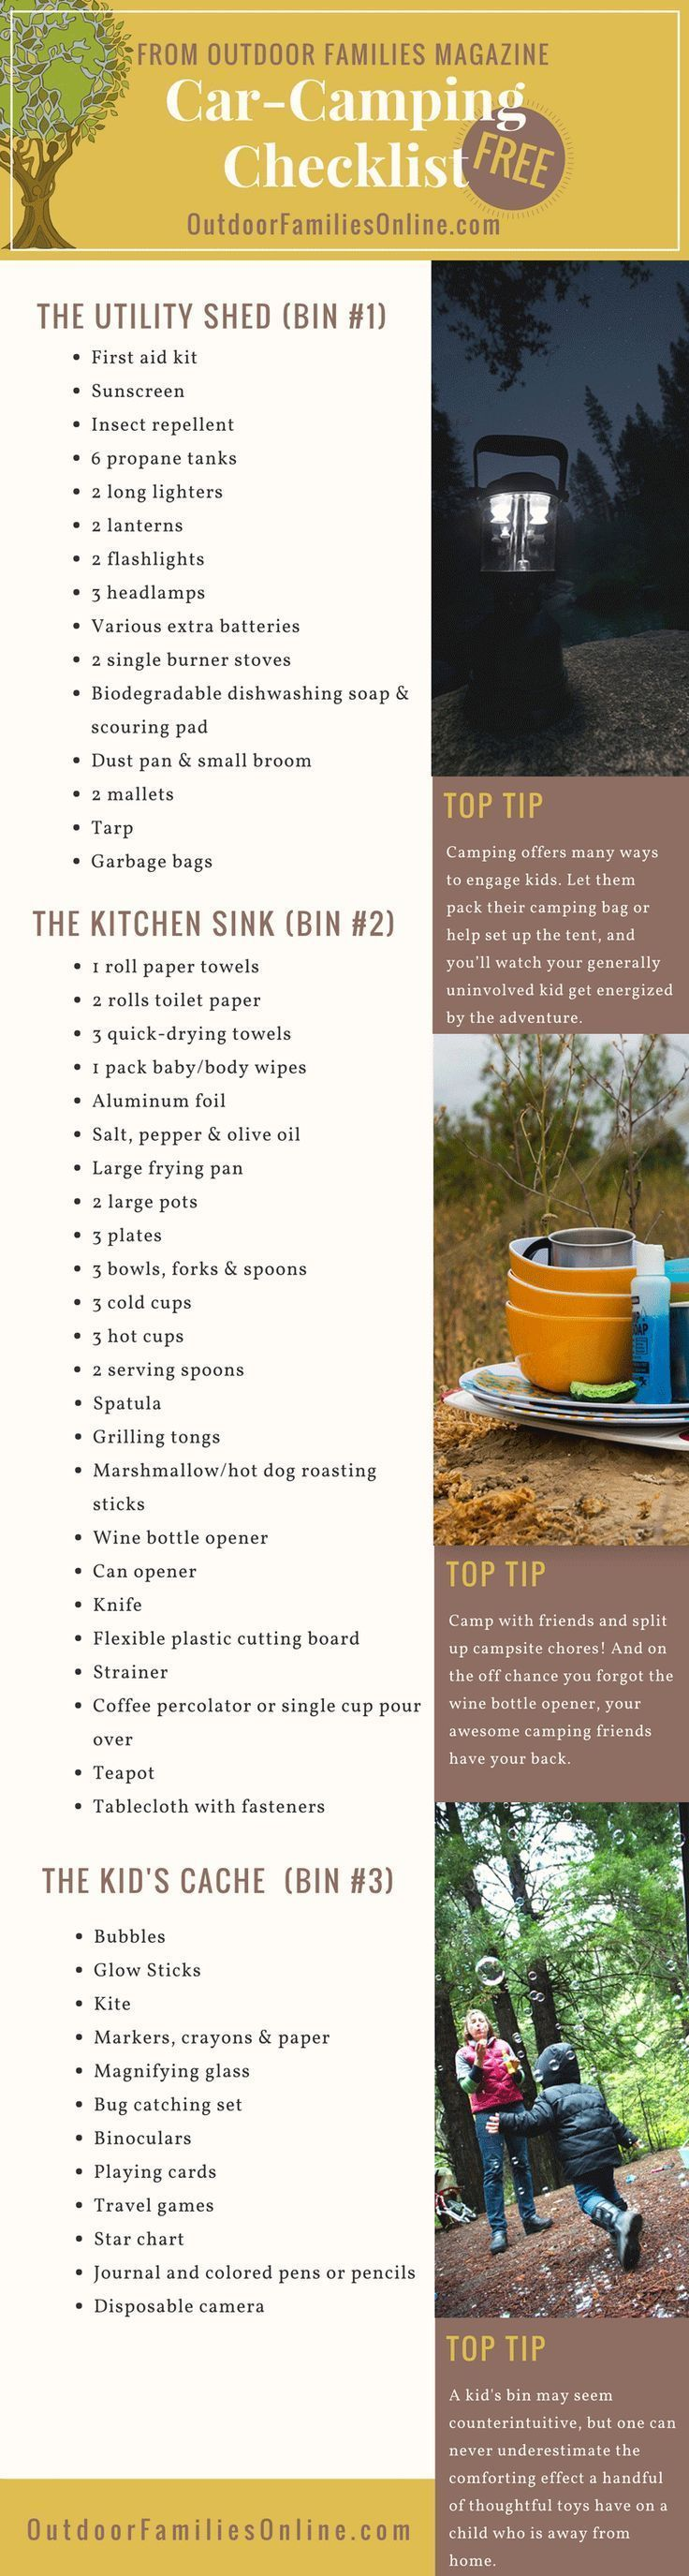 The 25 Best Camping Food Checklist Ideas On Pinterest